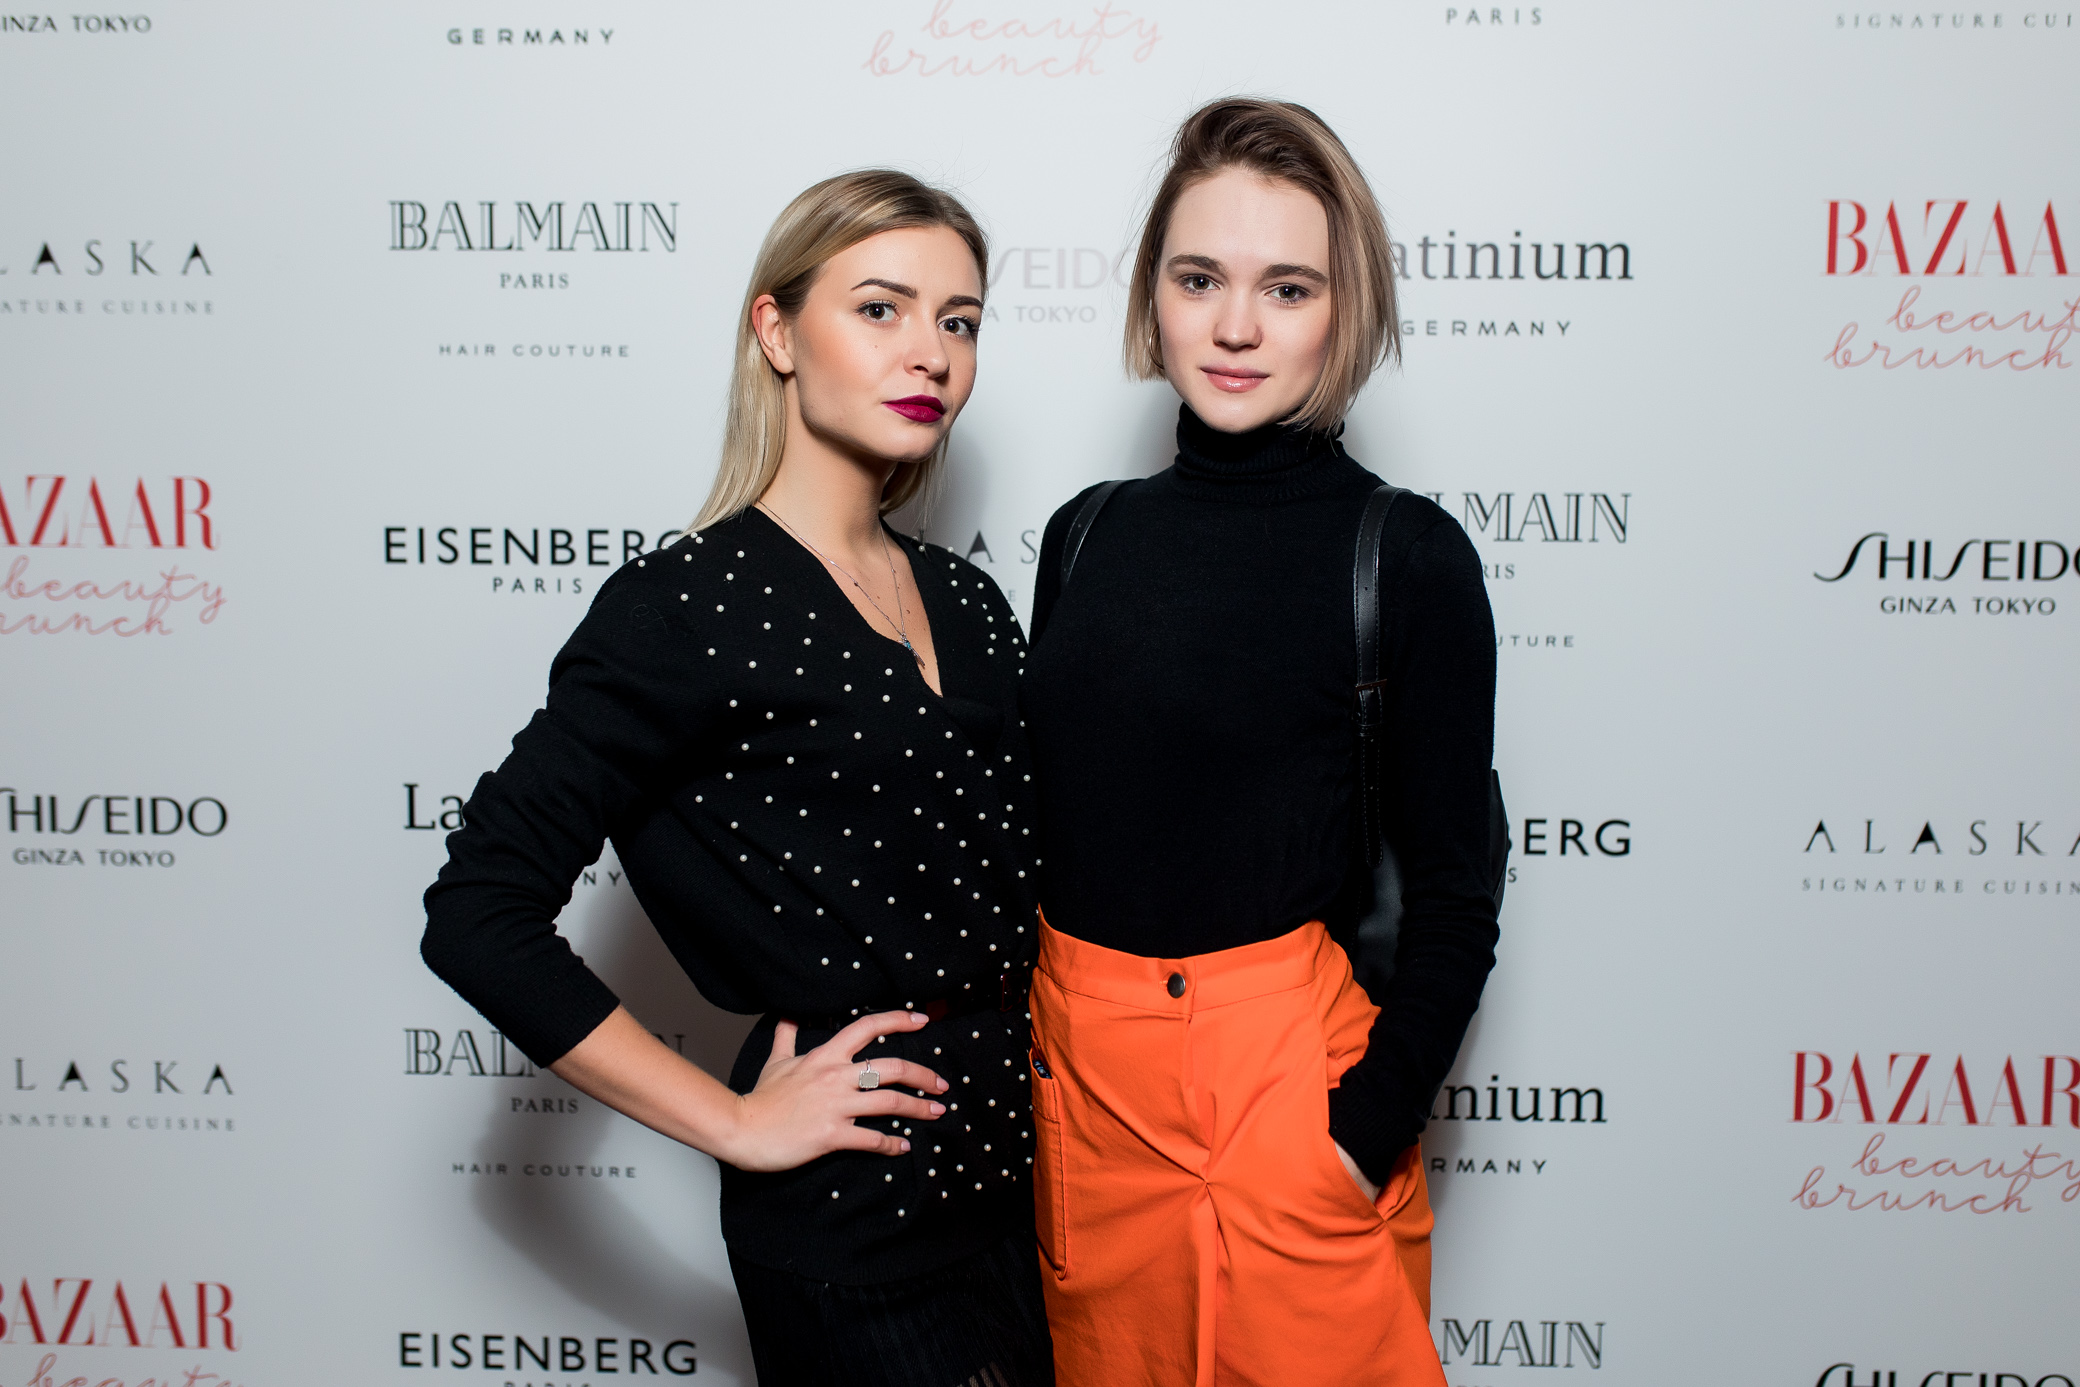 бренд, 8 марта, марка, Daisy, Shiseido, BAZAAR BEAUTY BRUNCH, Latinium, ресторан Alaska, Eisenberg Paris, Богдан Трибой, Balmain Paris Hair Couture, журнал Harper's Bazaar, Bazaar Beauty Brunch, мероприятие 2019, beauty-новинки, флеш-макияж